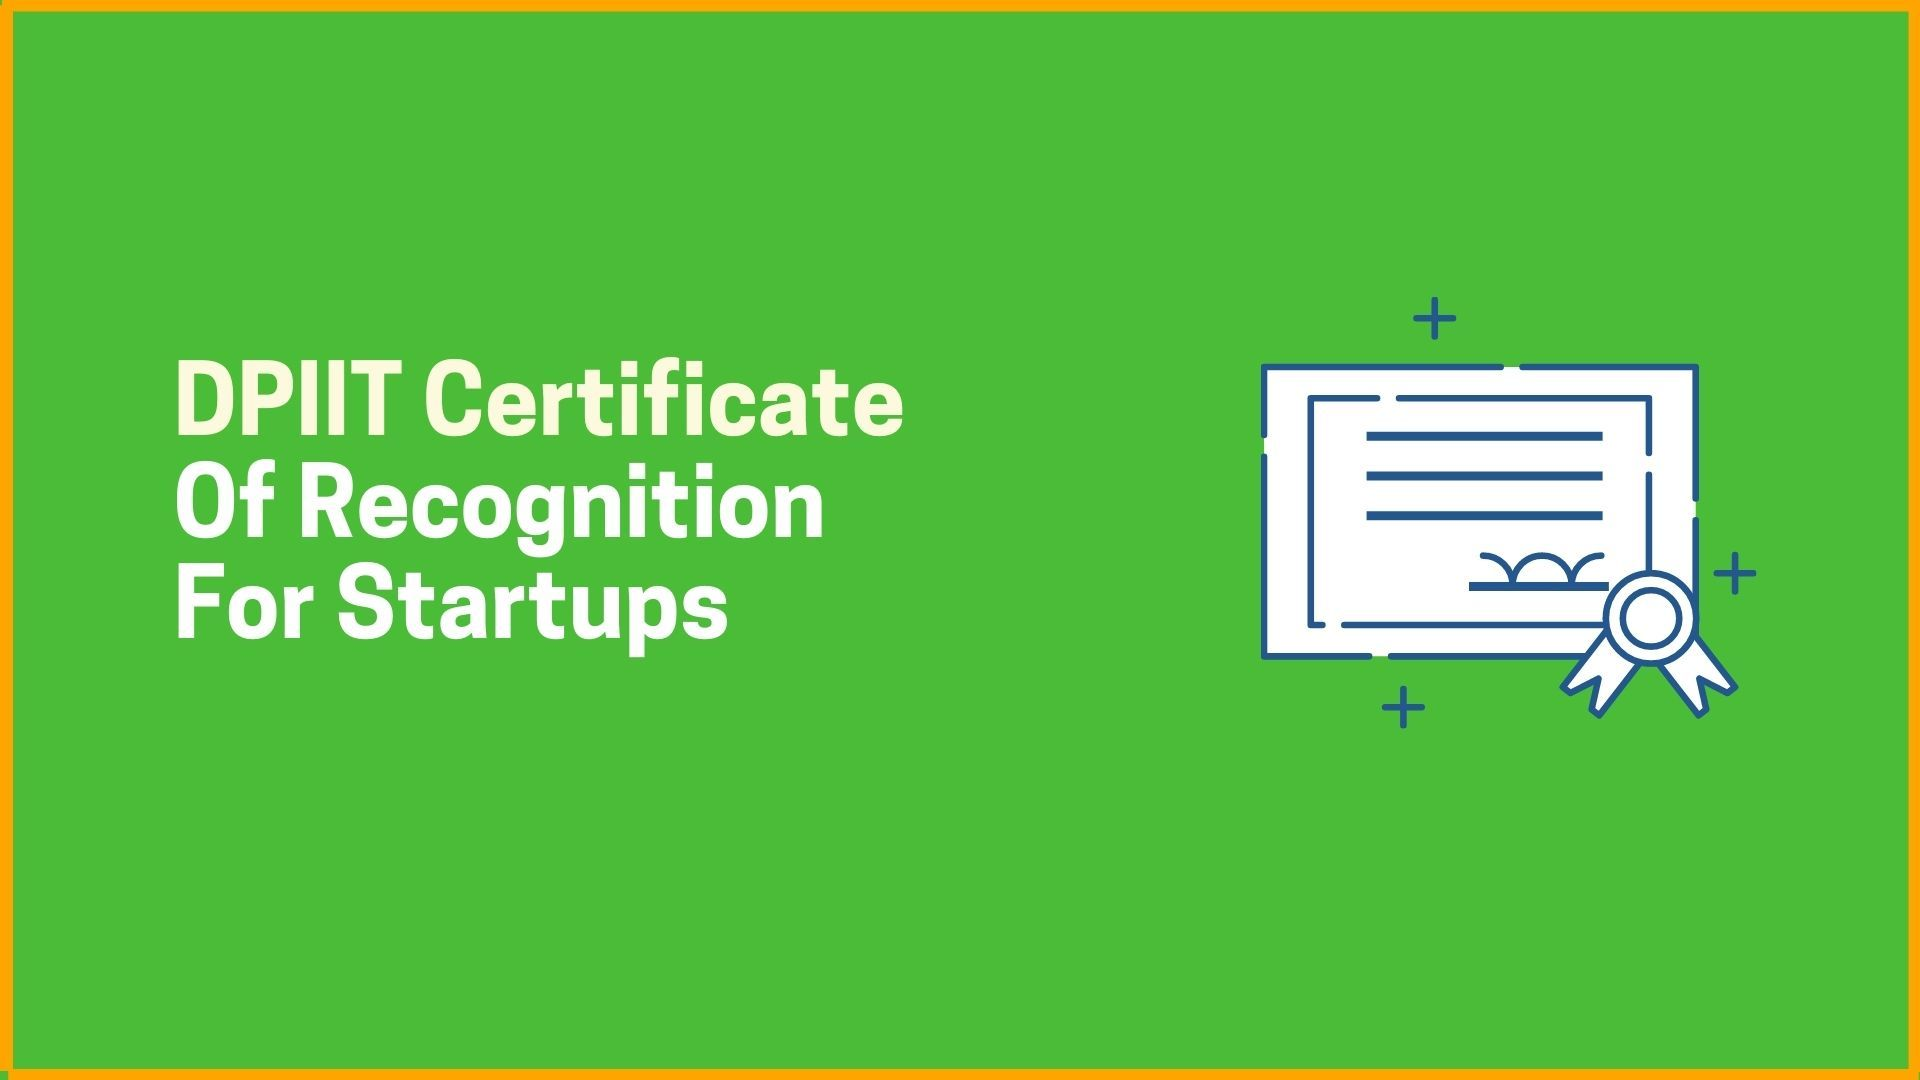 DPIIT Certificate of Recognition for Startups